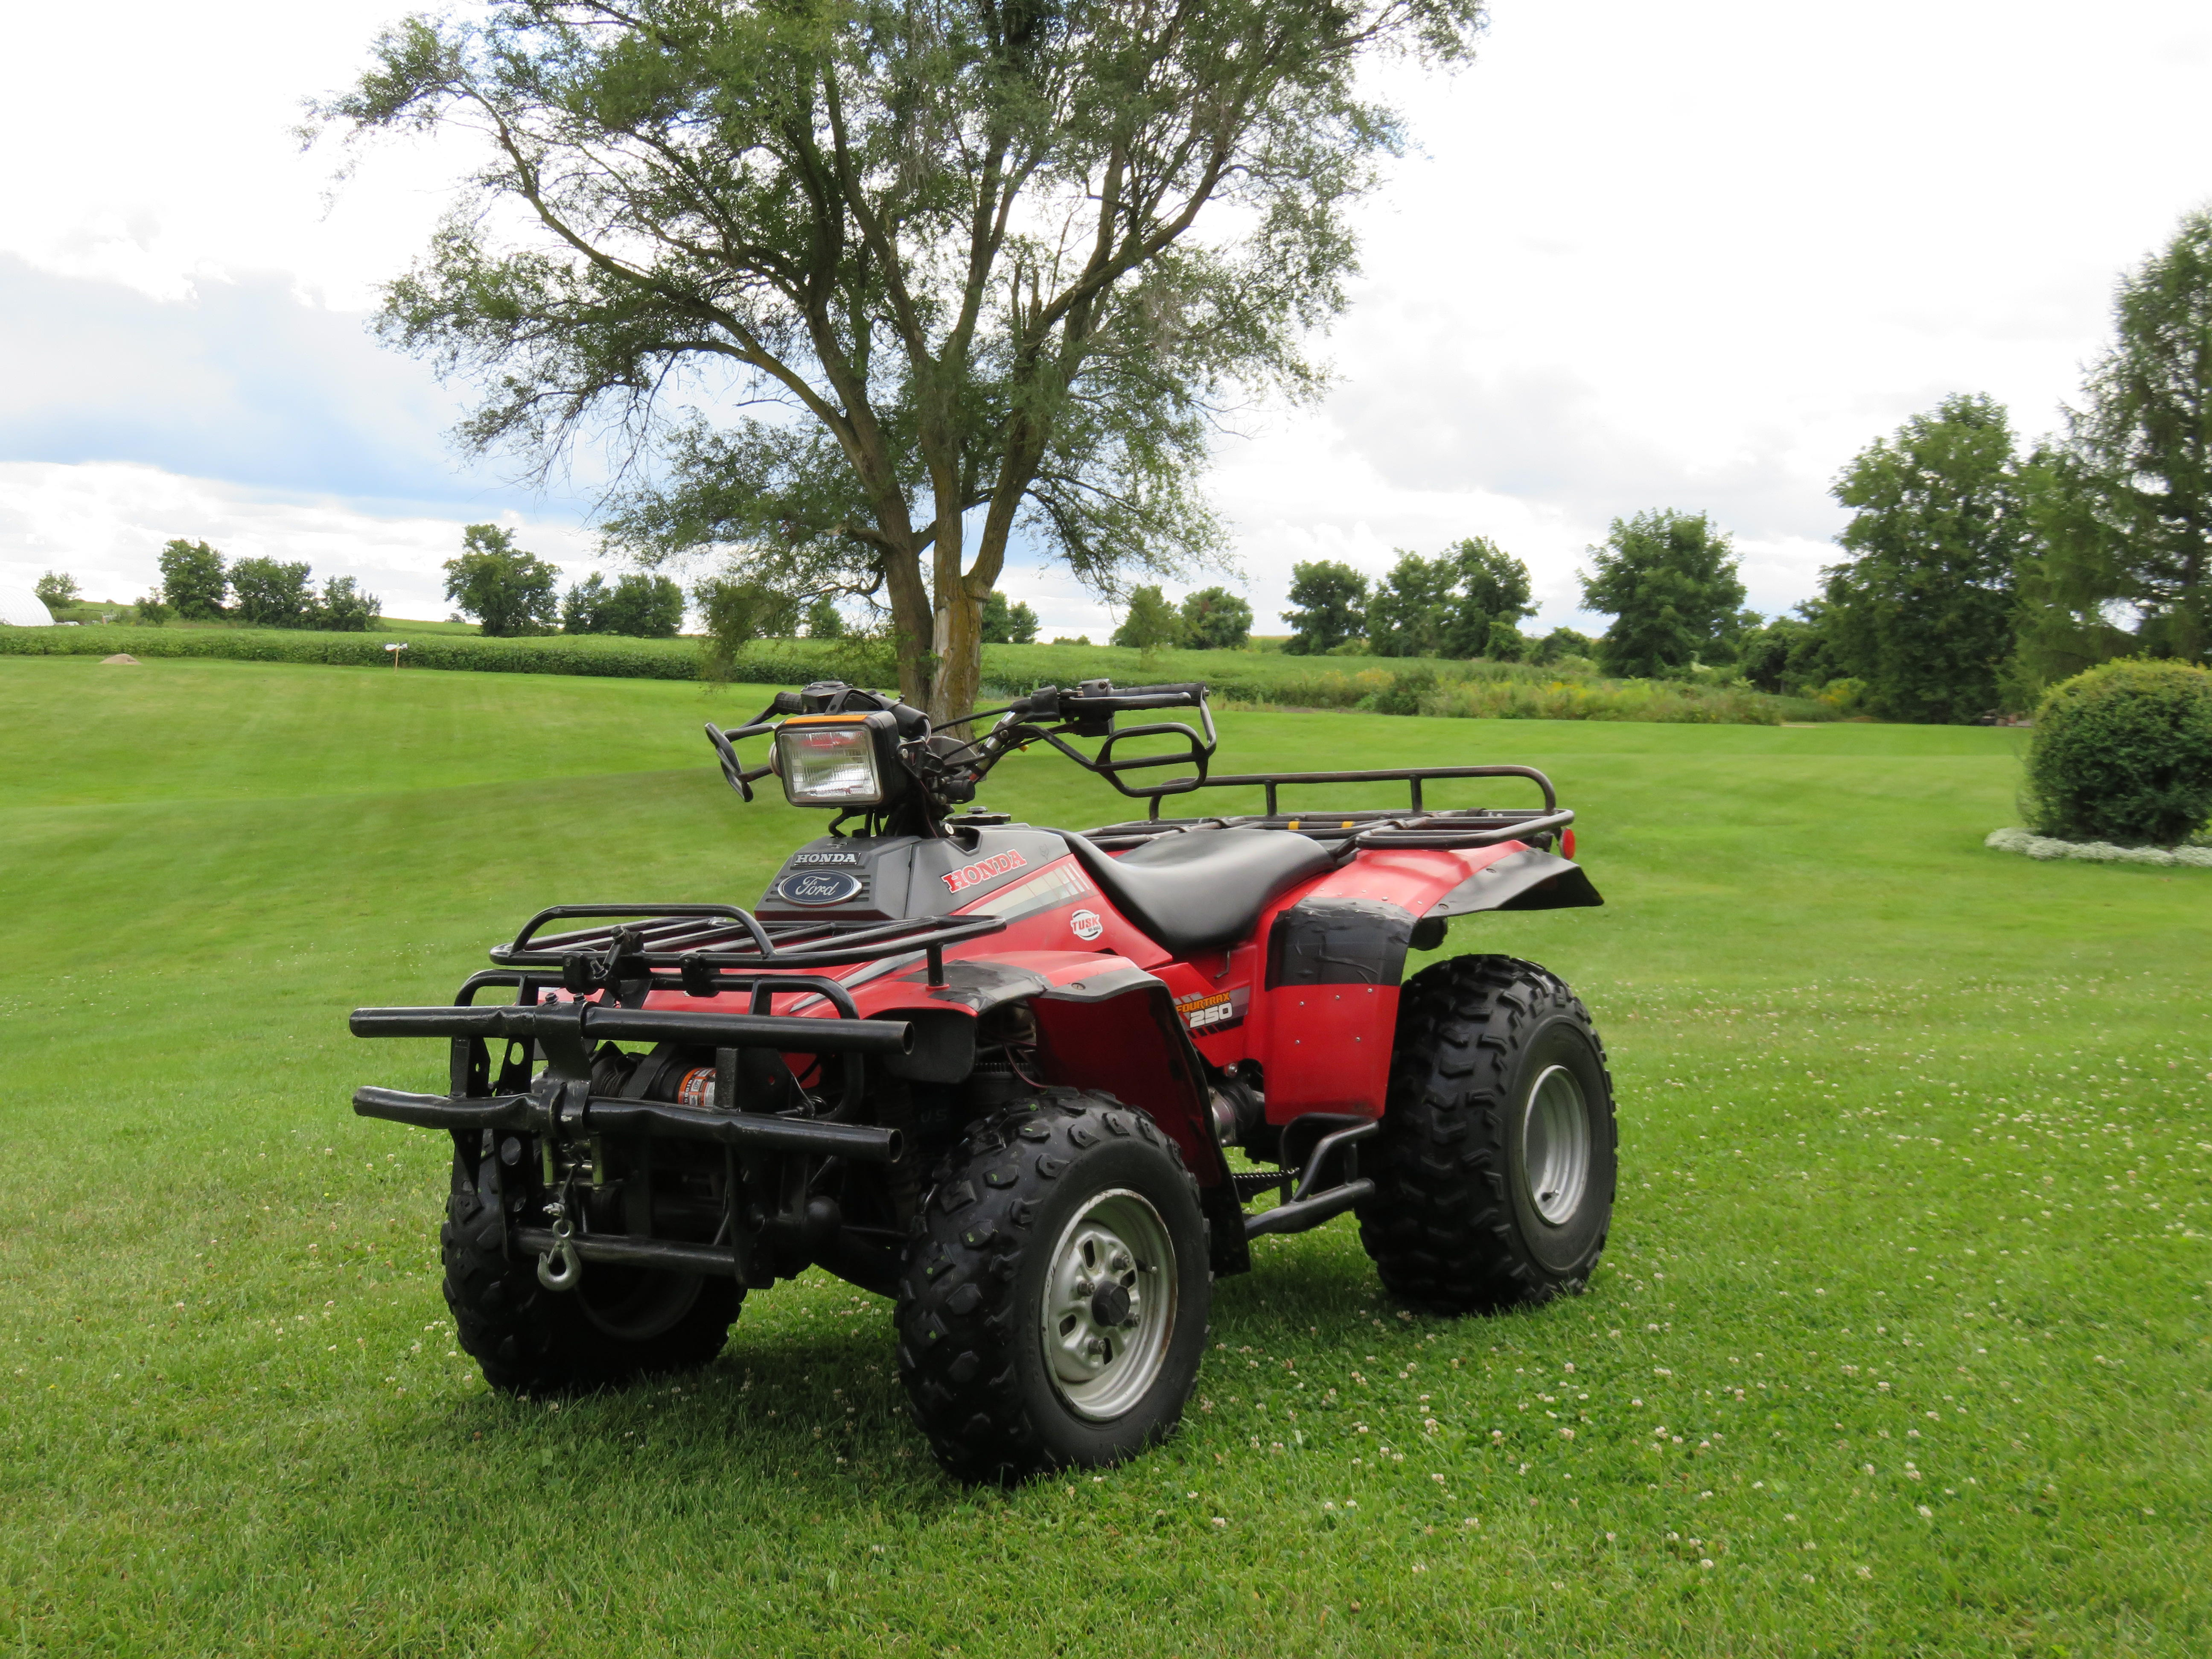 Ideas How To Customize My '86 TRX250 Fourtrax?